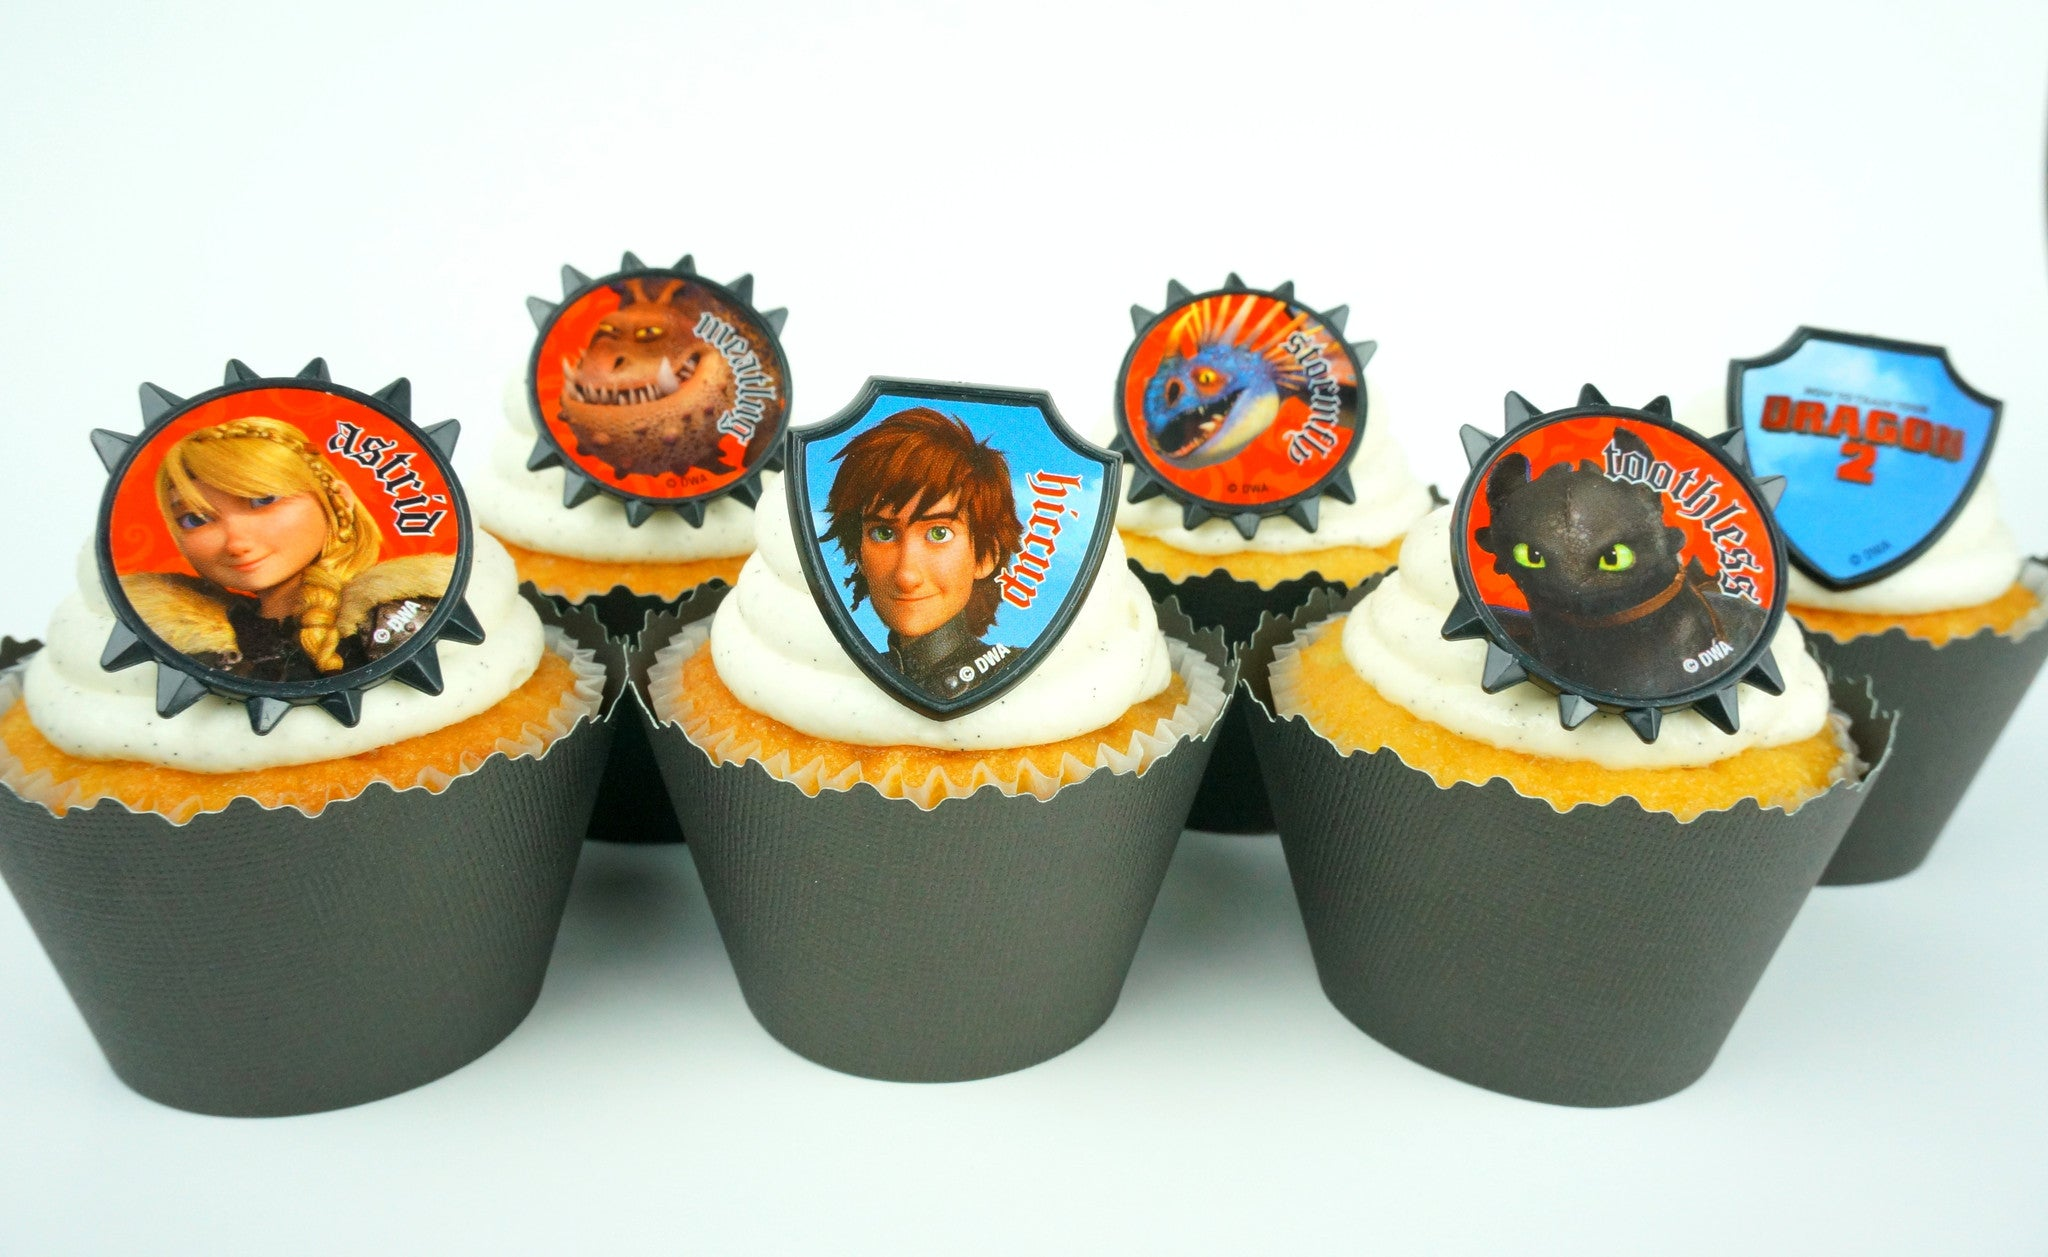 How to train your dragon cupcake topperswrappers combo set of 24 how to train your dragon cupcake topperswrappers combo set of 24 items ccuart Image collections